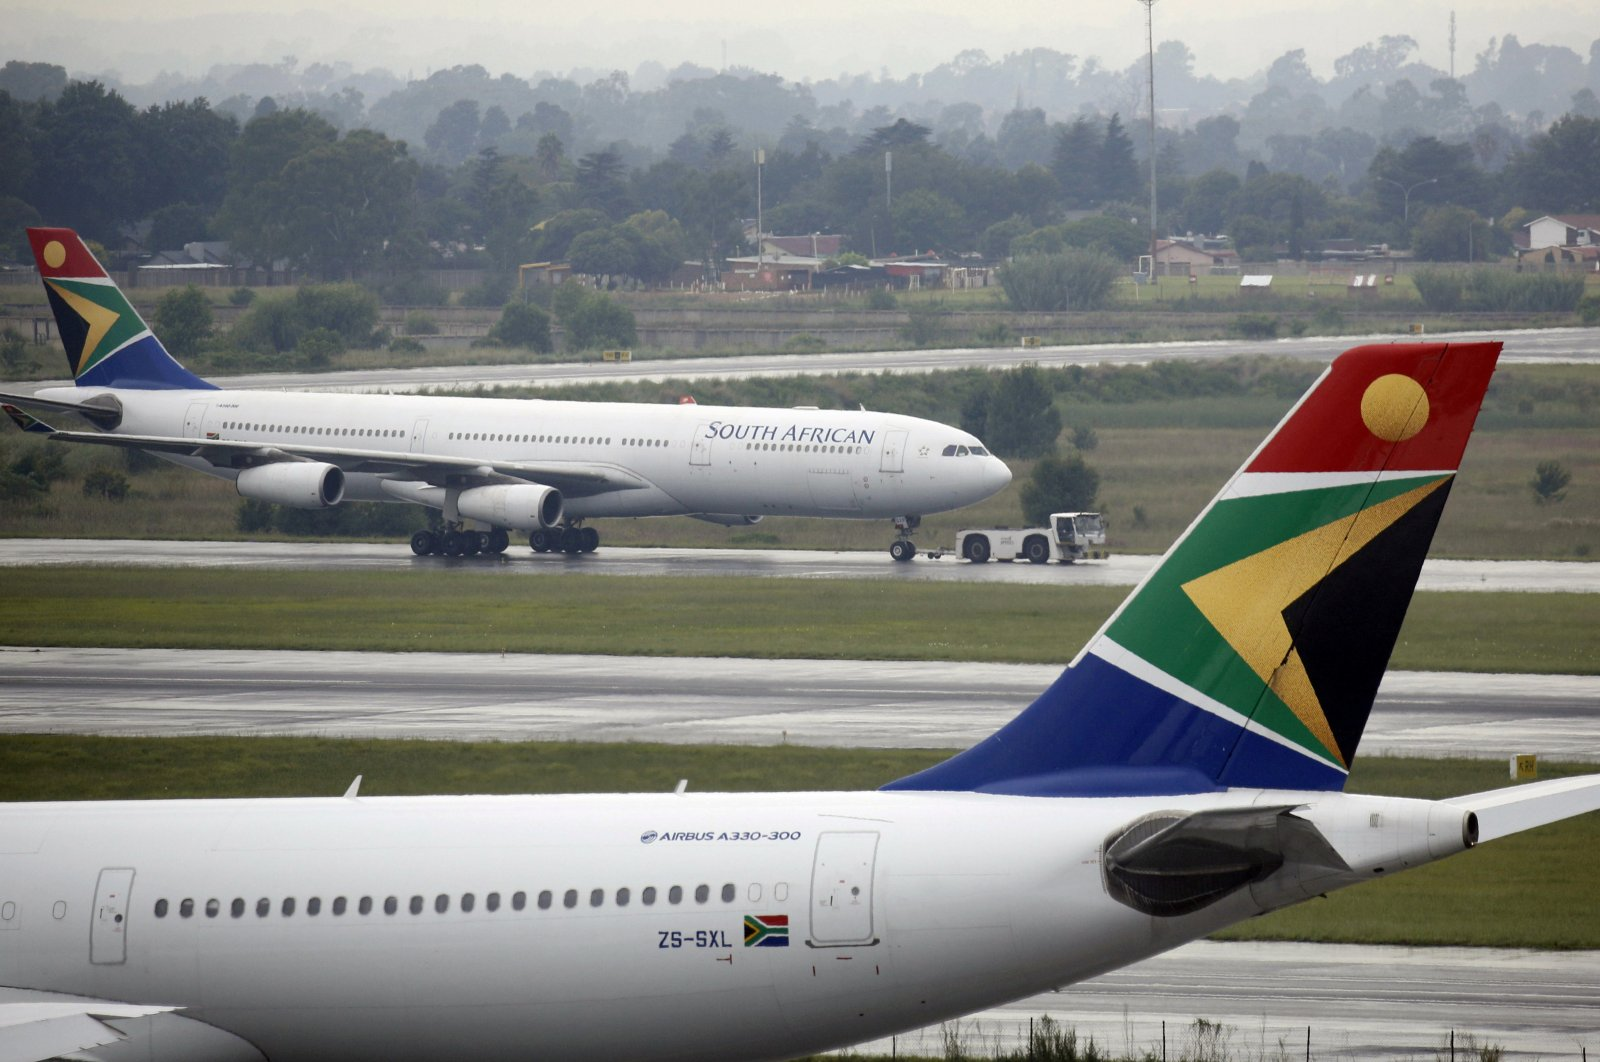 A South African Airways (SAA) plane is towed at O.R. Tambo International Airport in Johannesburg, South Africa, January 18, 2020. (REUTERS Photo)